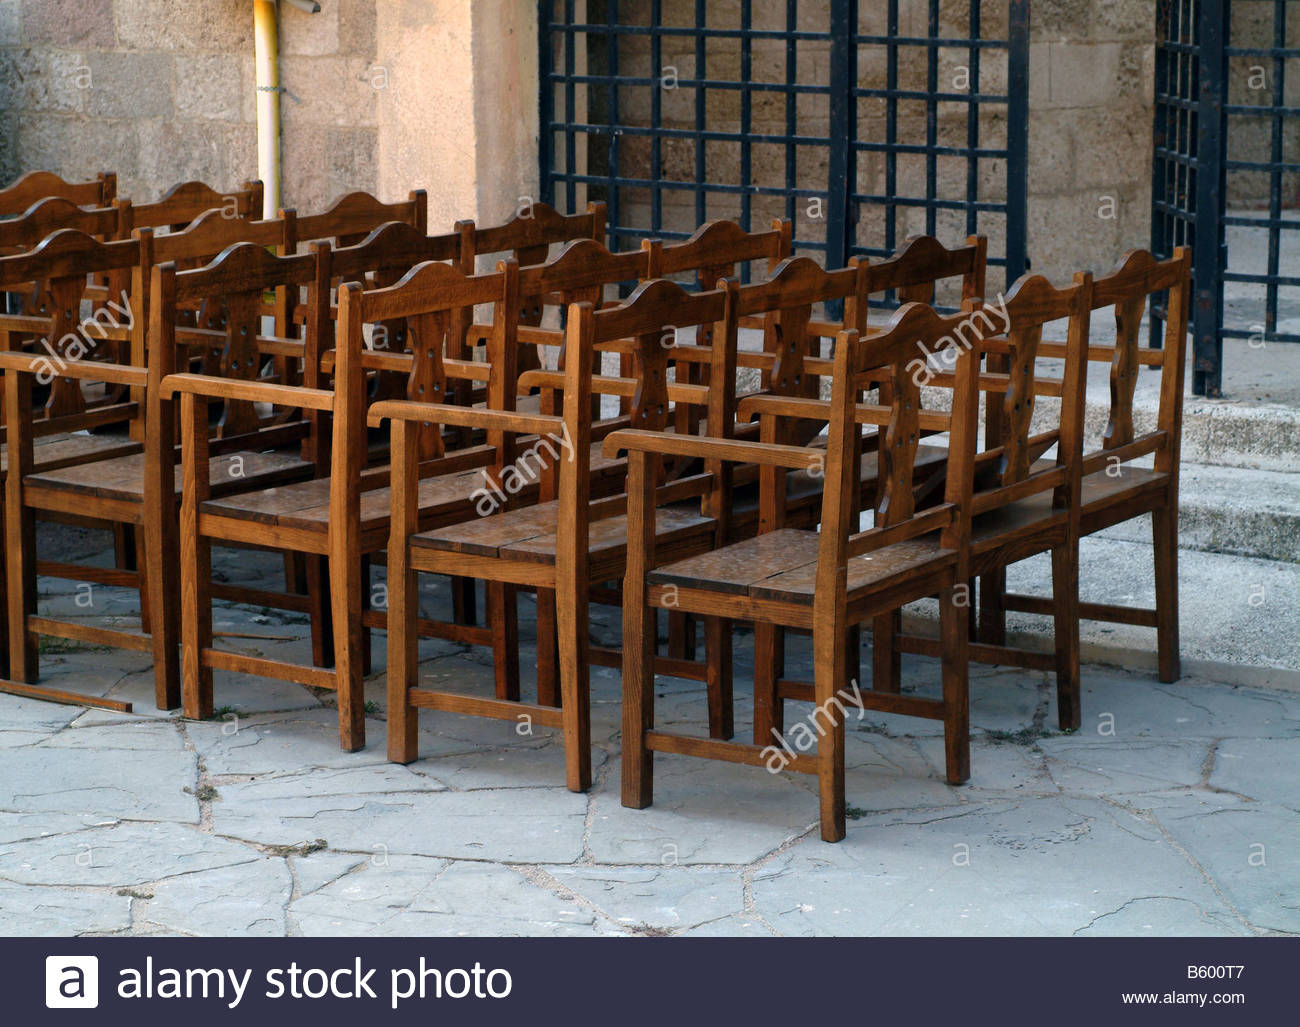 CHURCH Chairs Chair Outside Outdoors Outside Church Religion Pew Empty  Church Religious Religion Building Design Old